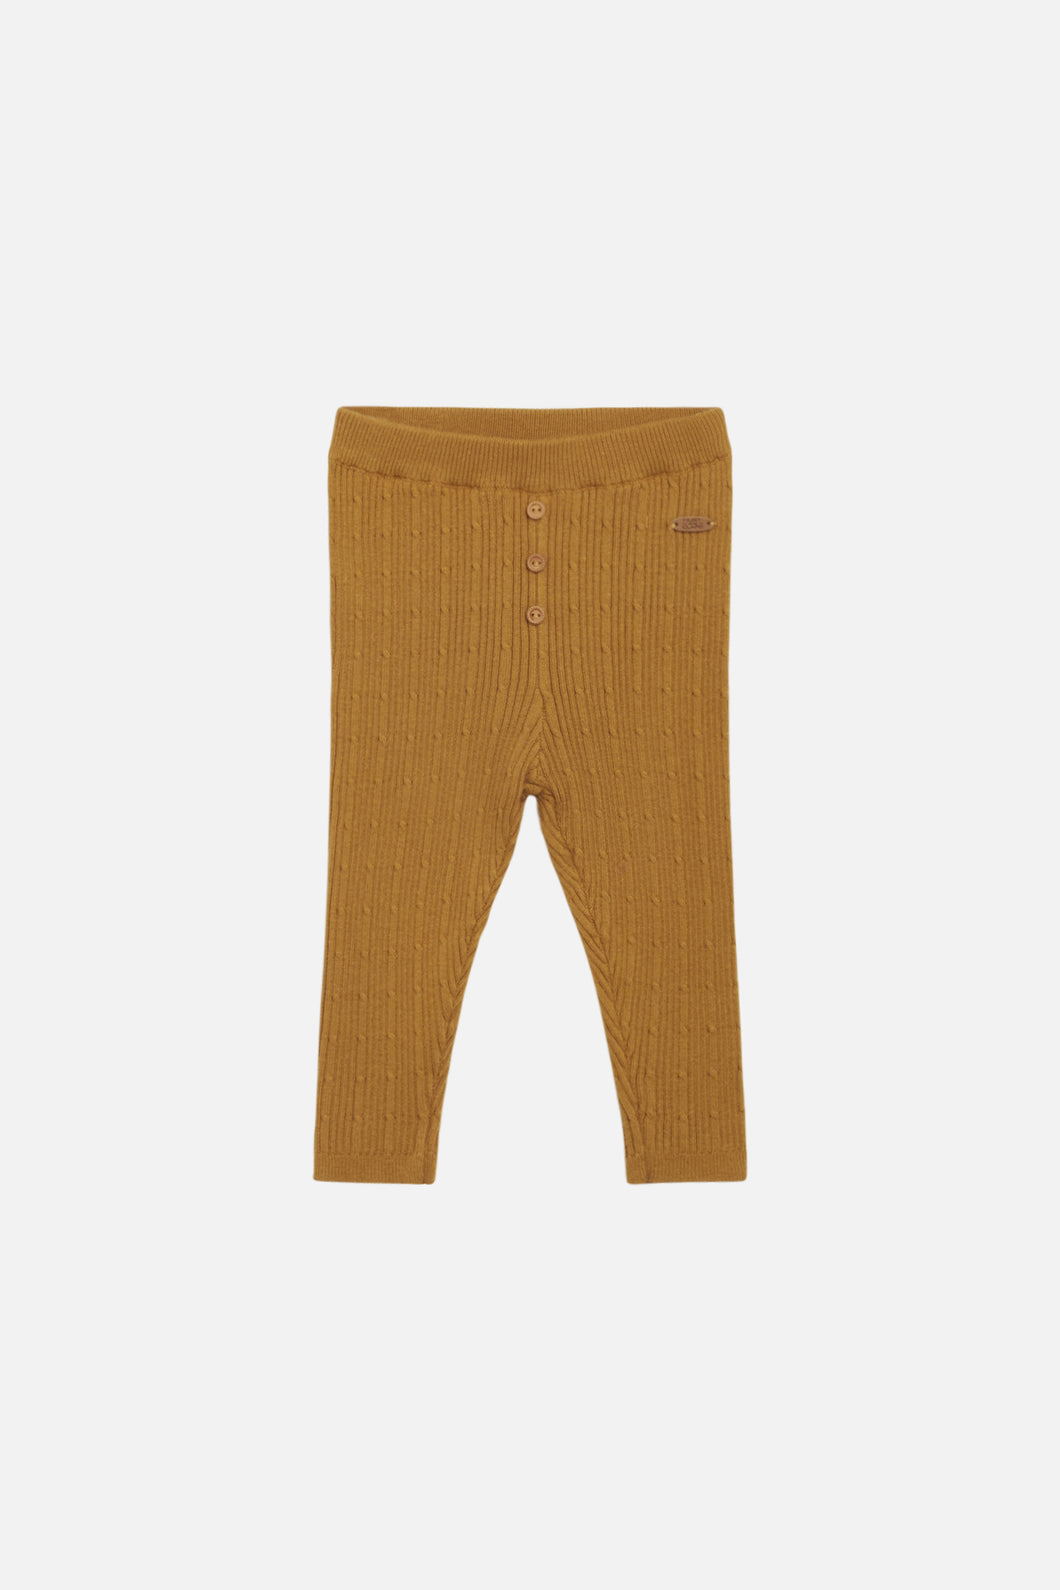 Hust & Claire - Lolly Legging Ochre